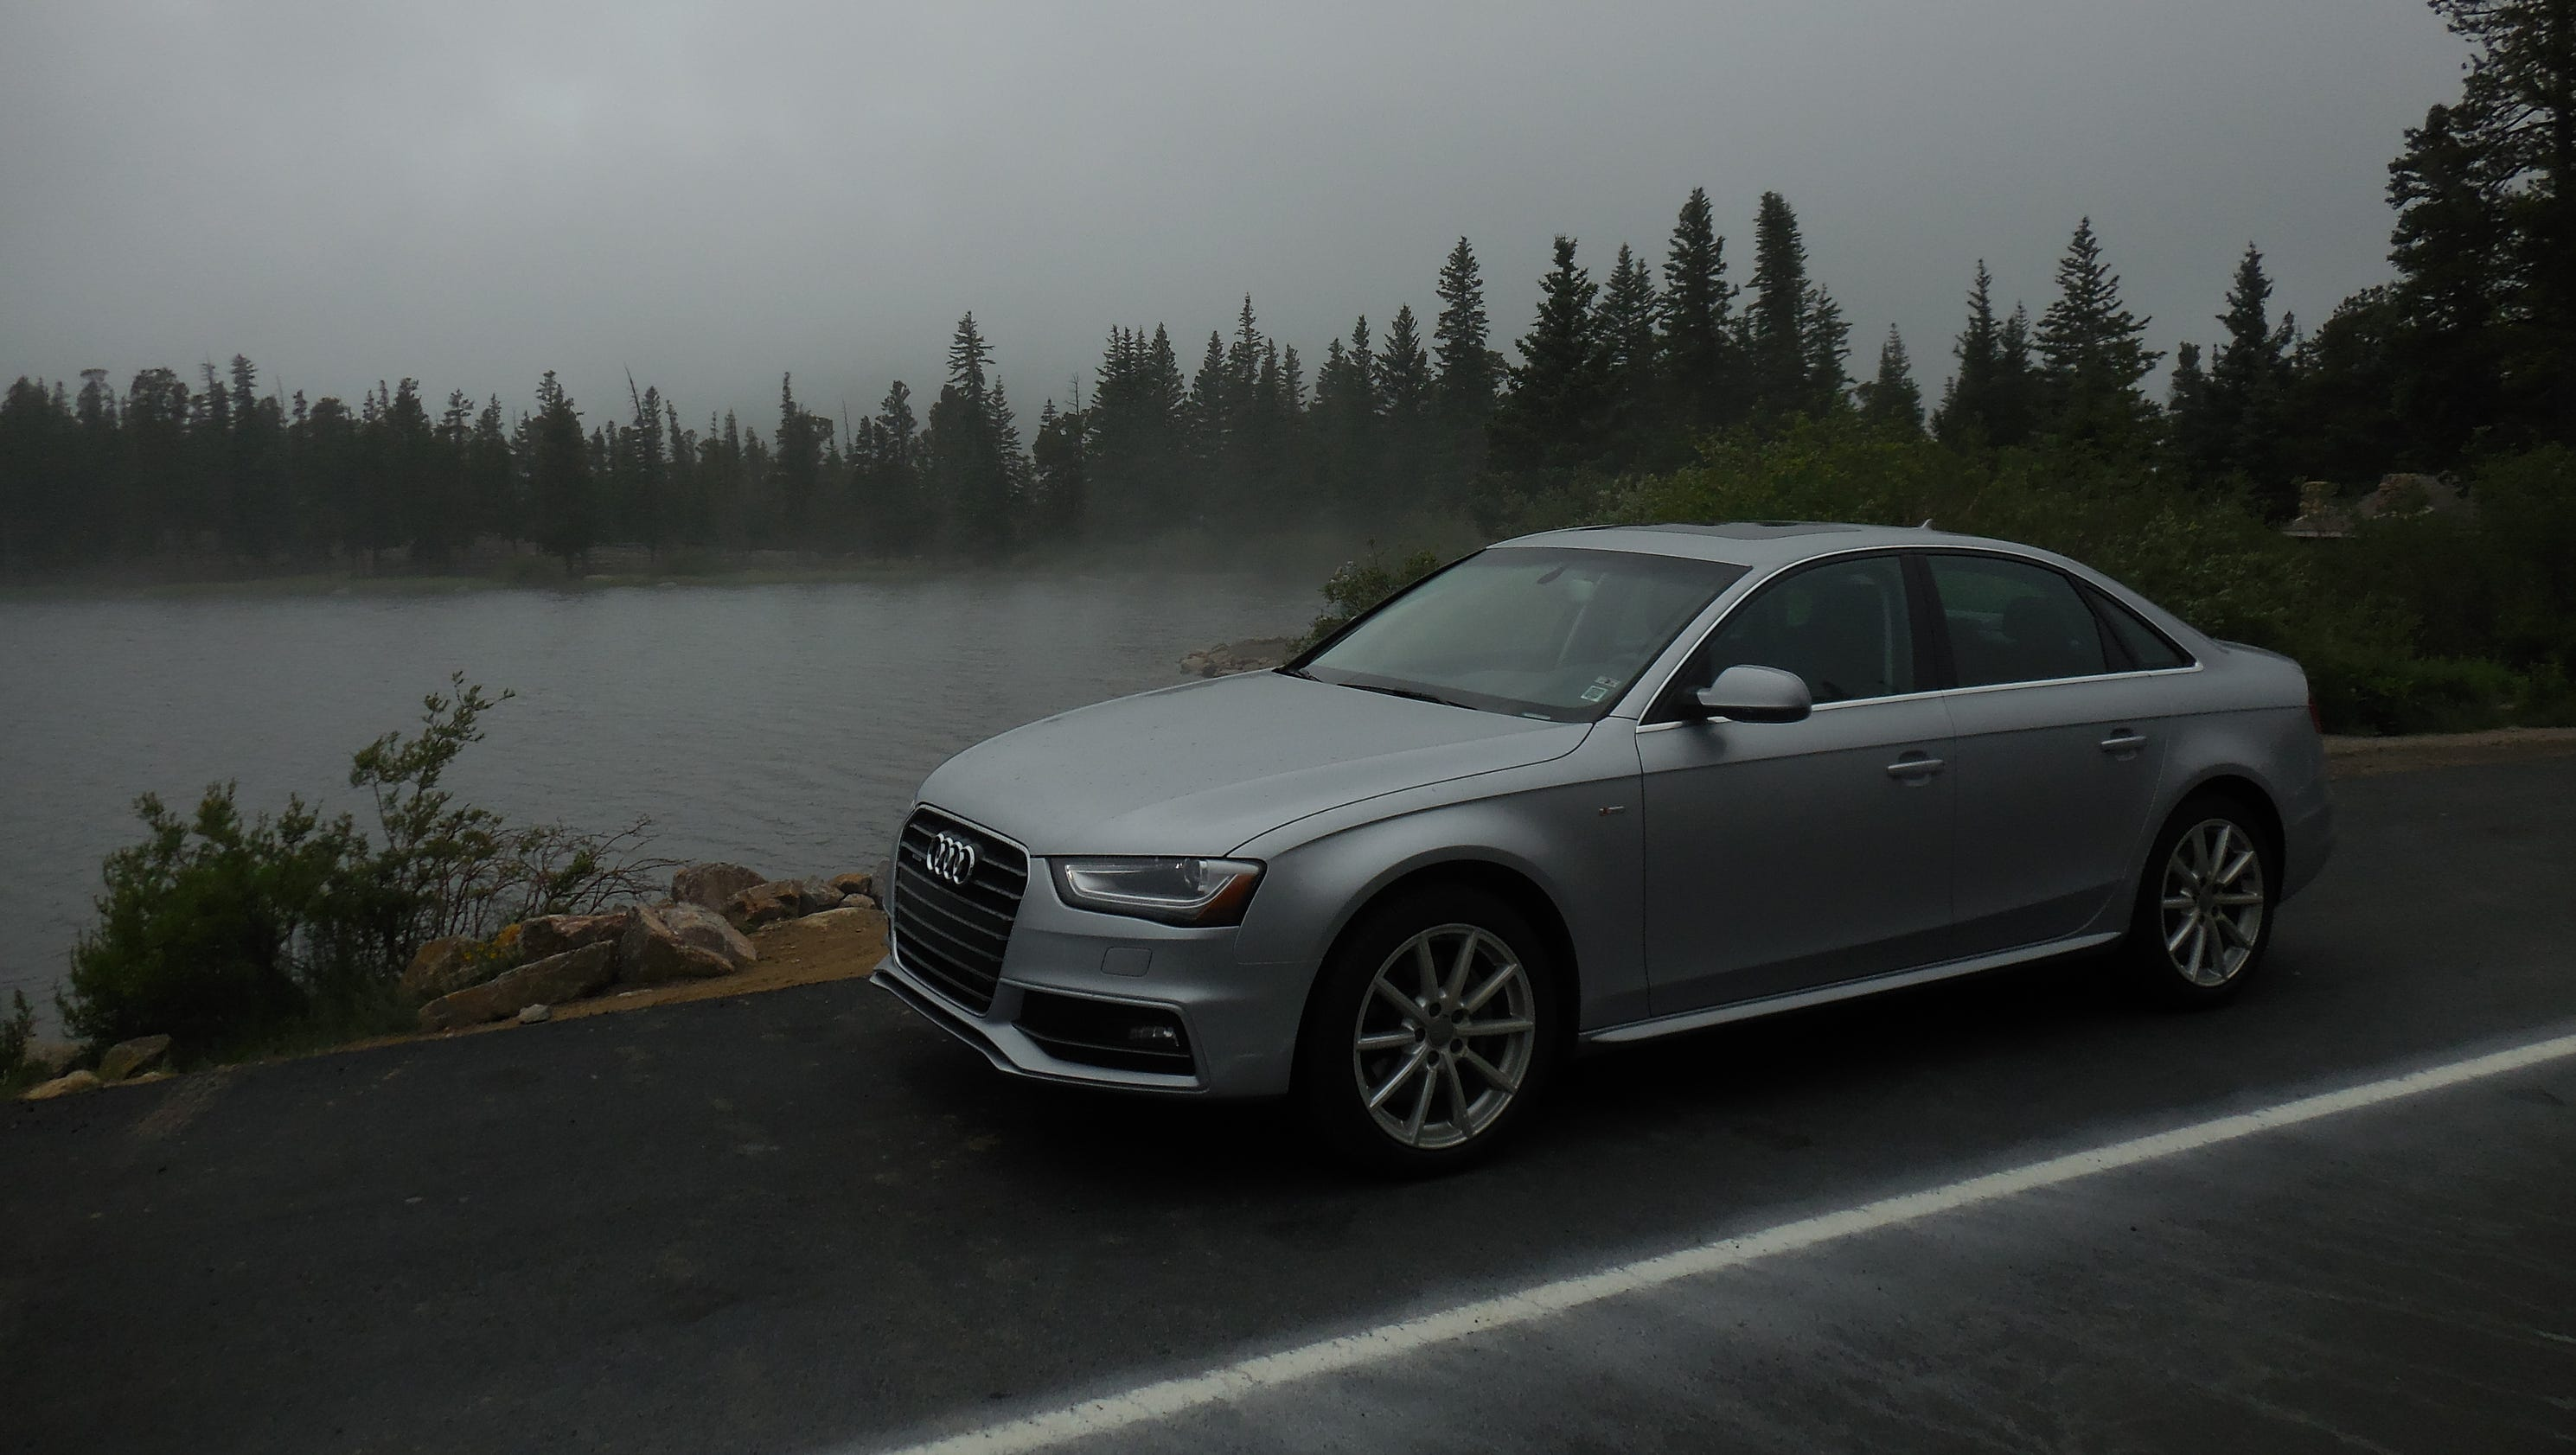 Taking Silvercar And Its Spiffy Audis For A Test Drive